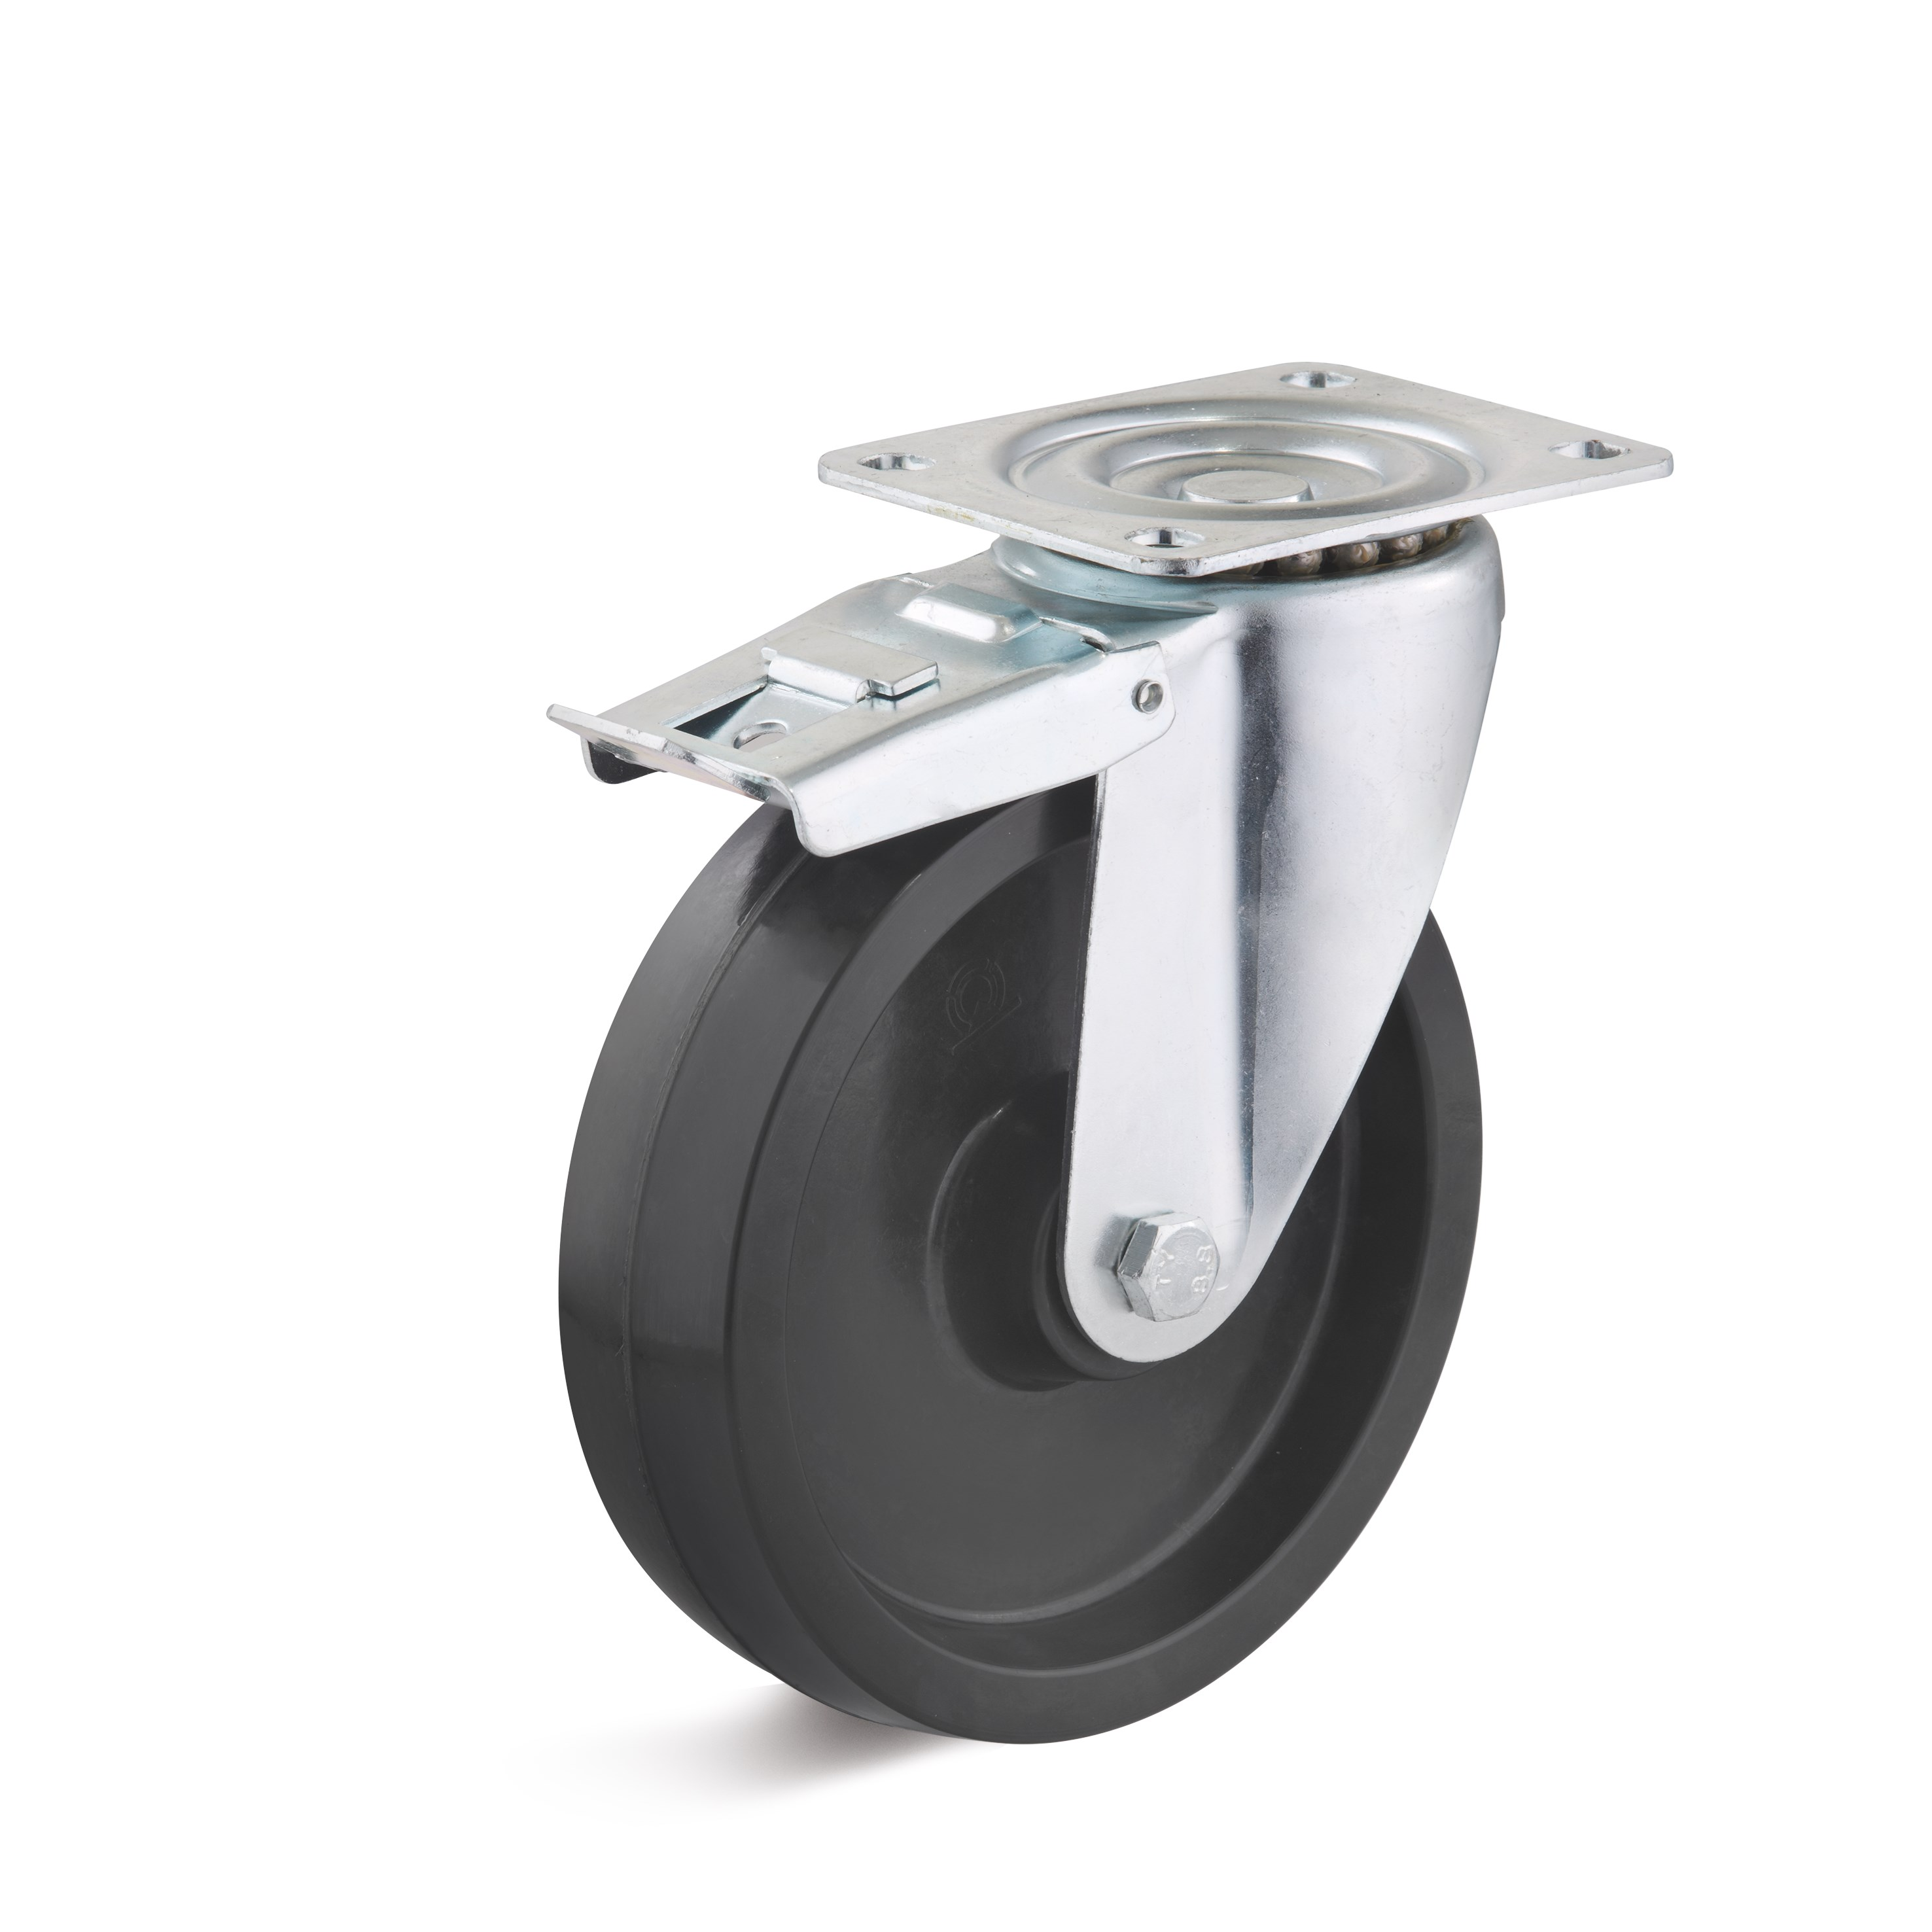 Swivel caster with double stop and heat resistant wheel